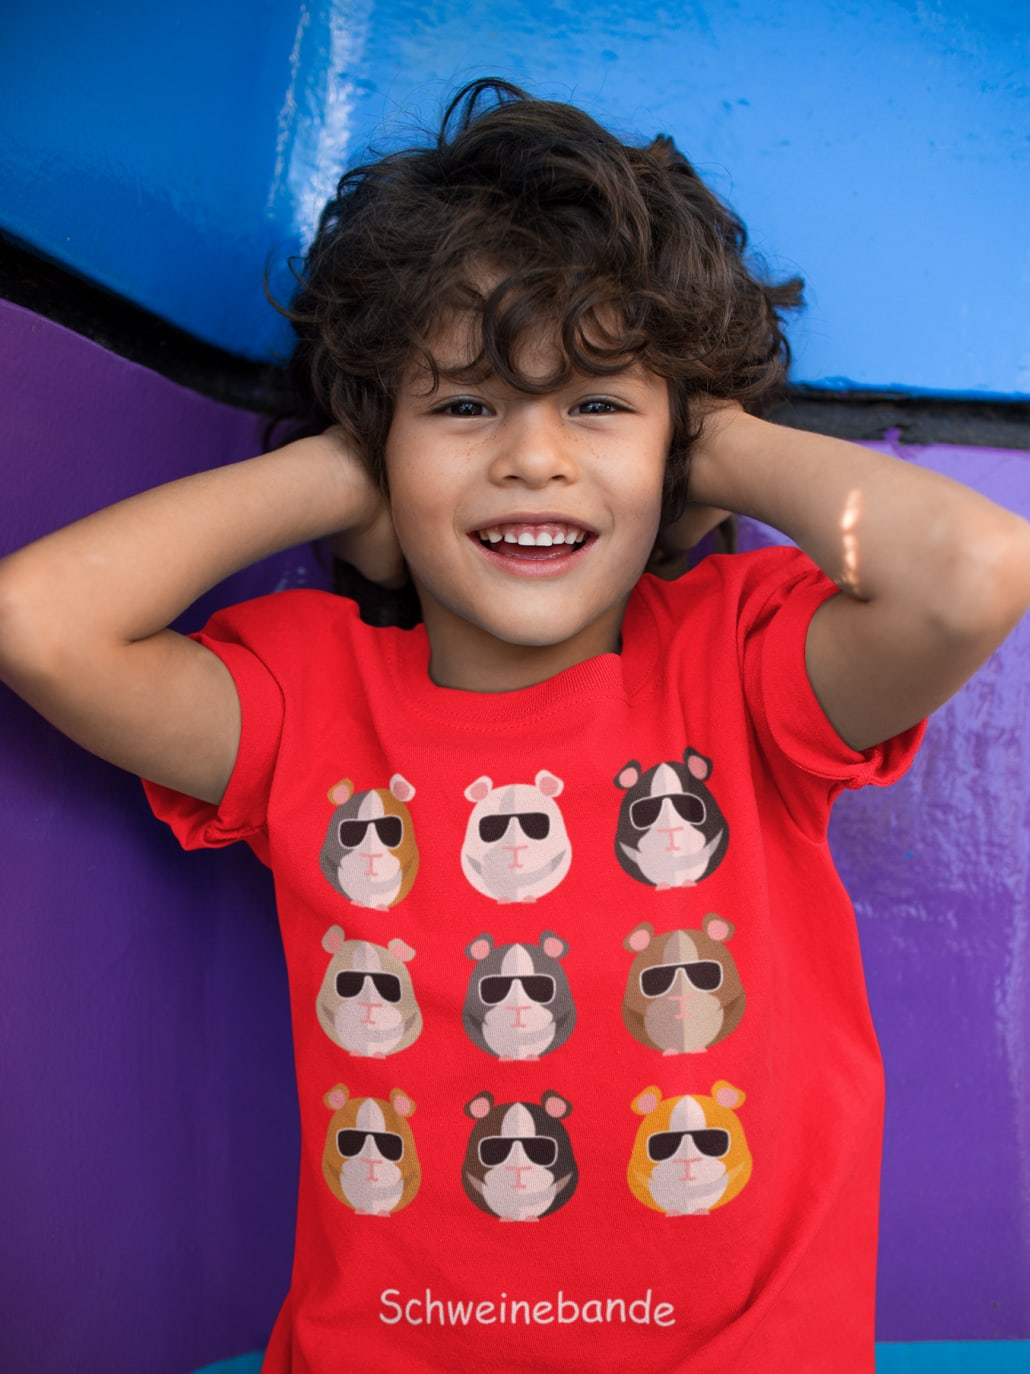 smiling boy with red T-Shirt guineapigs  on it